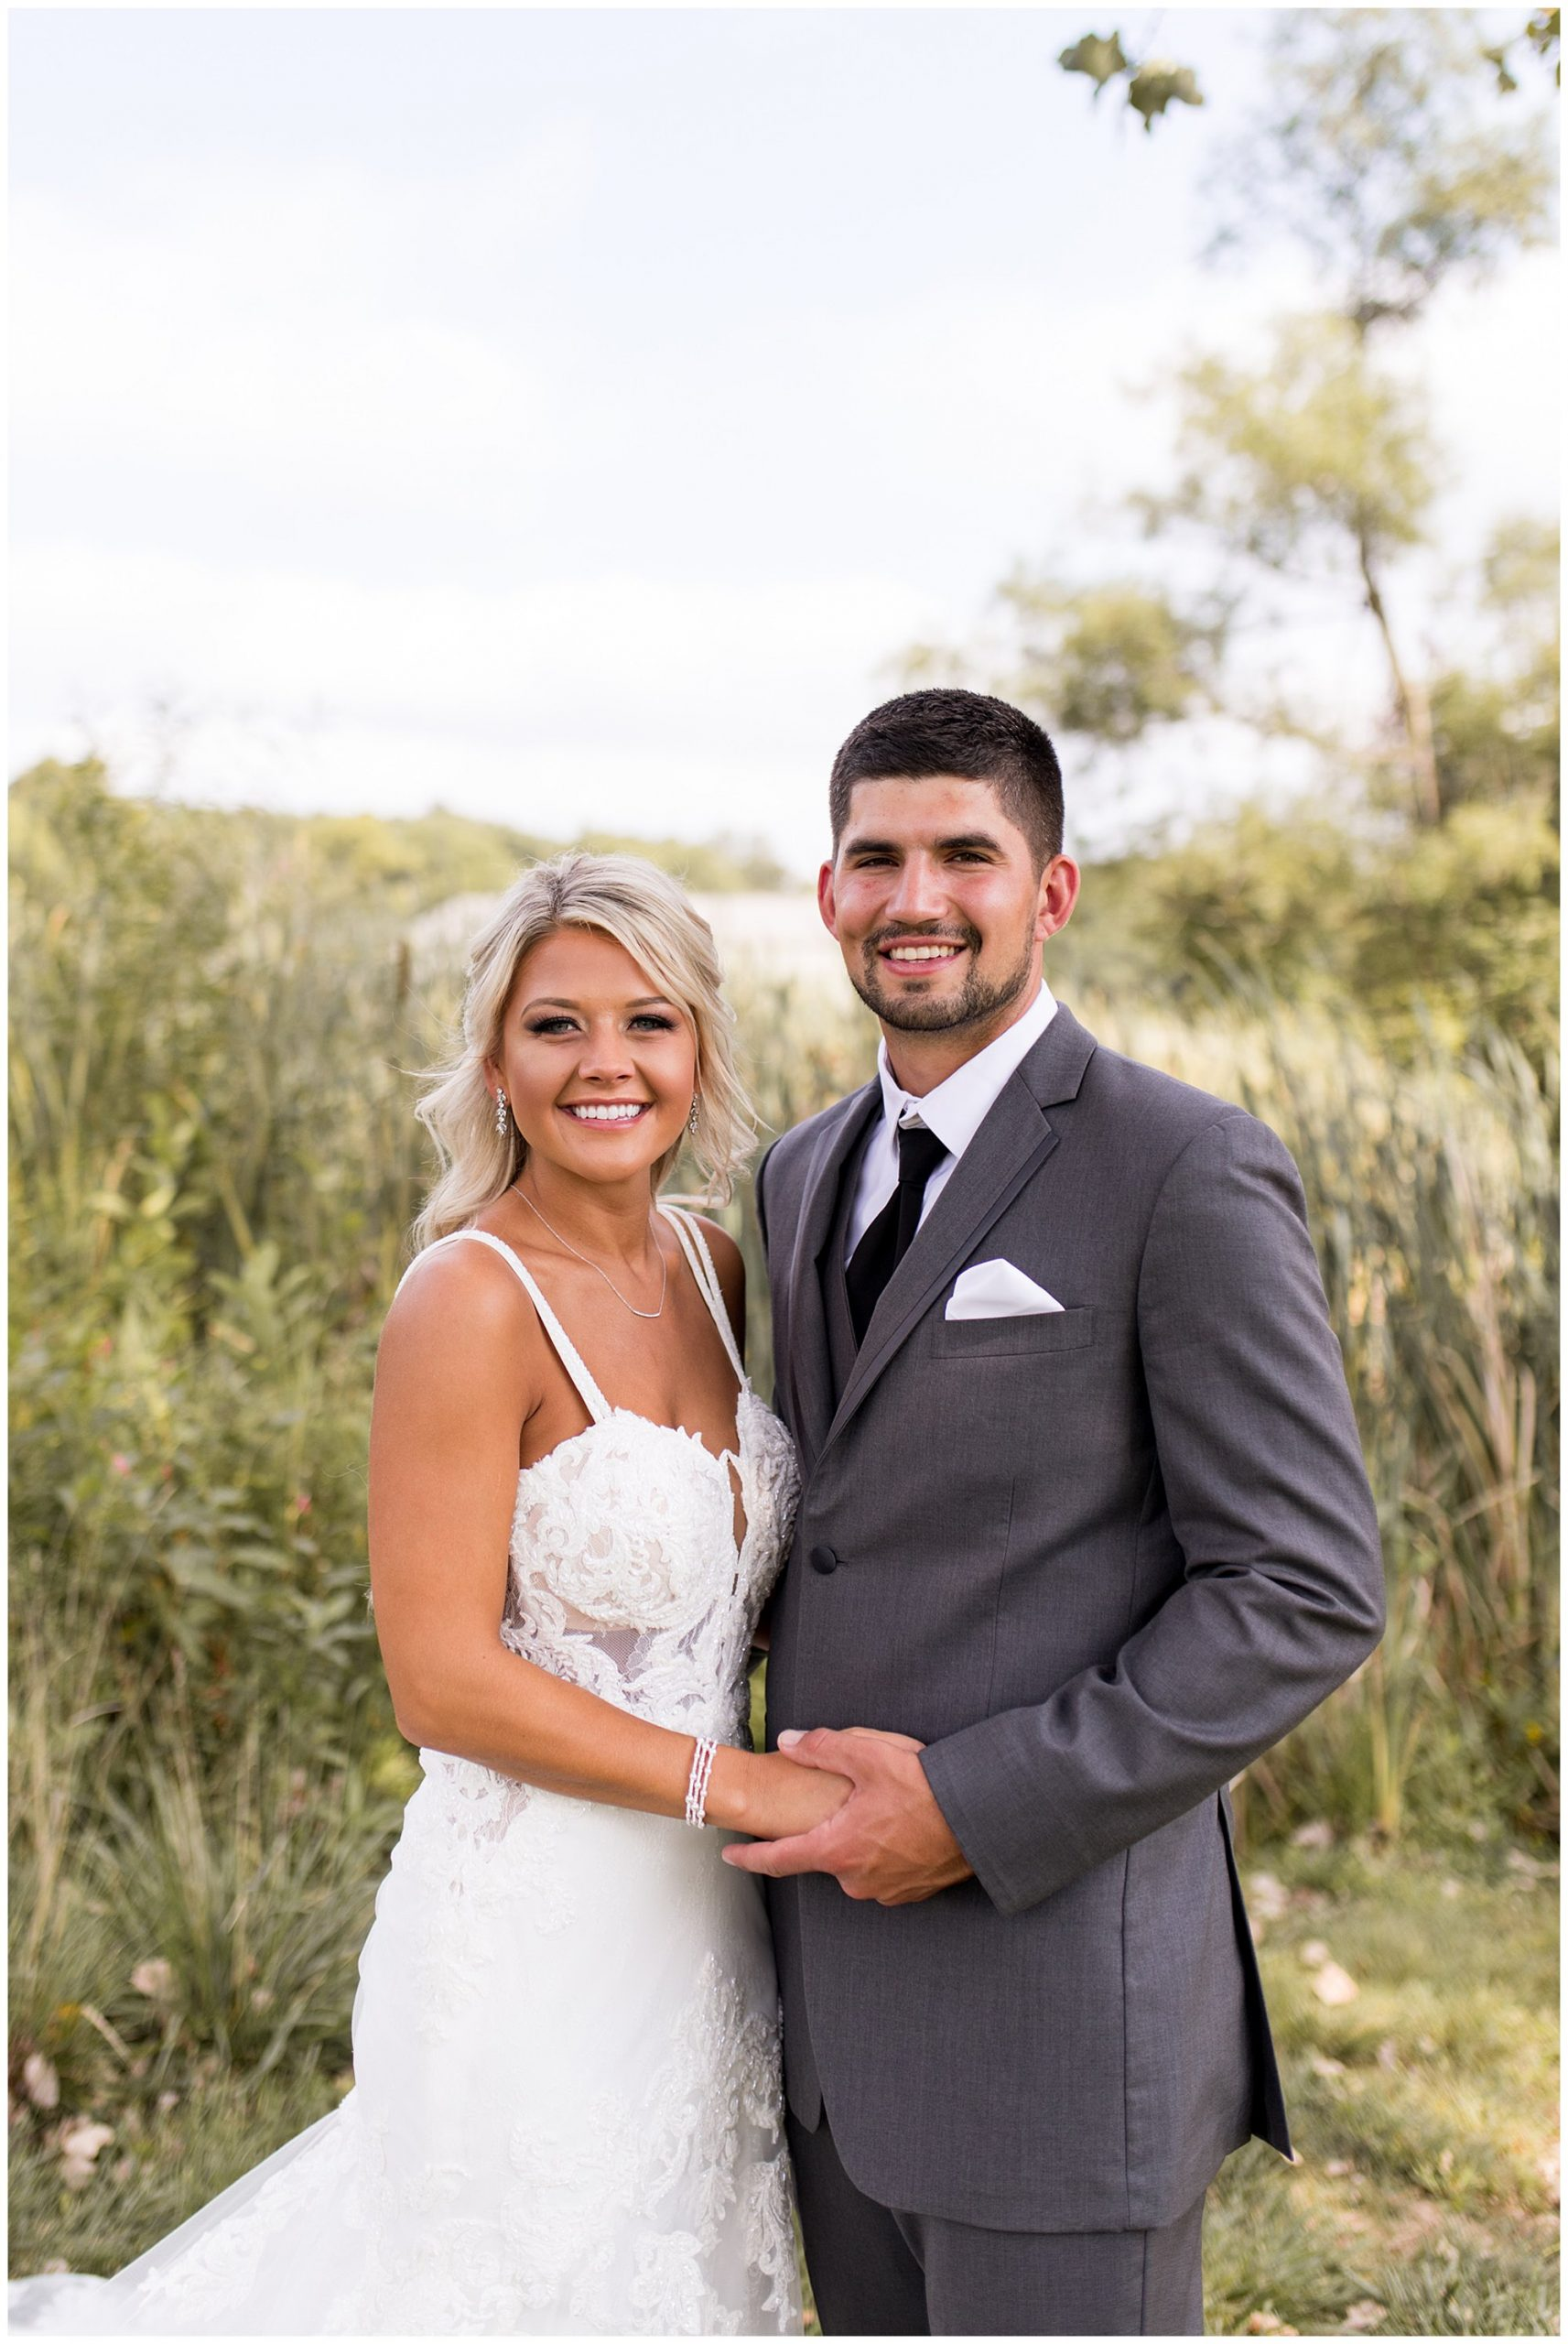 bride and groom portraits at Union 12 wedding venue in Fort Wayne